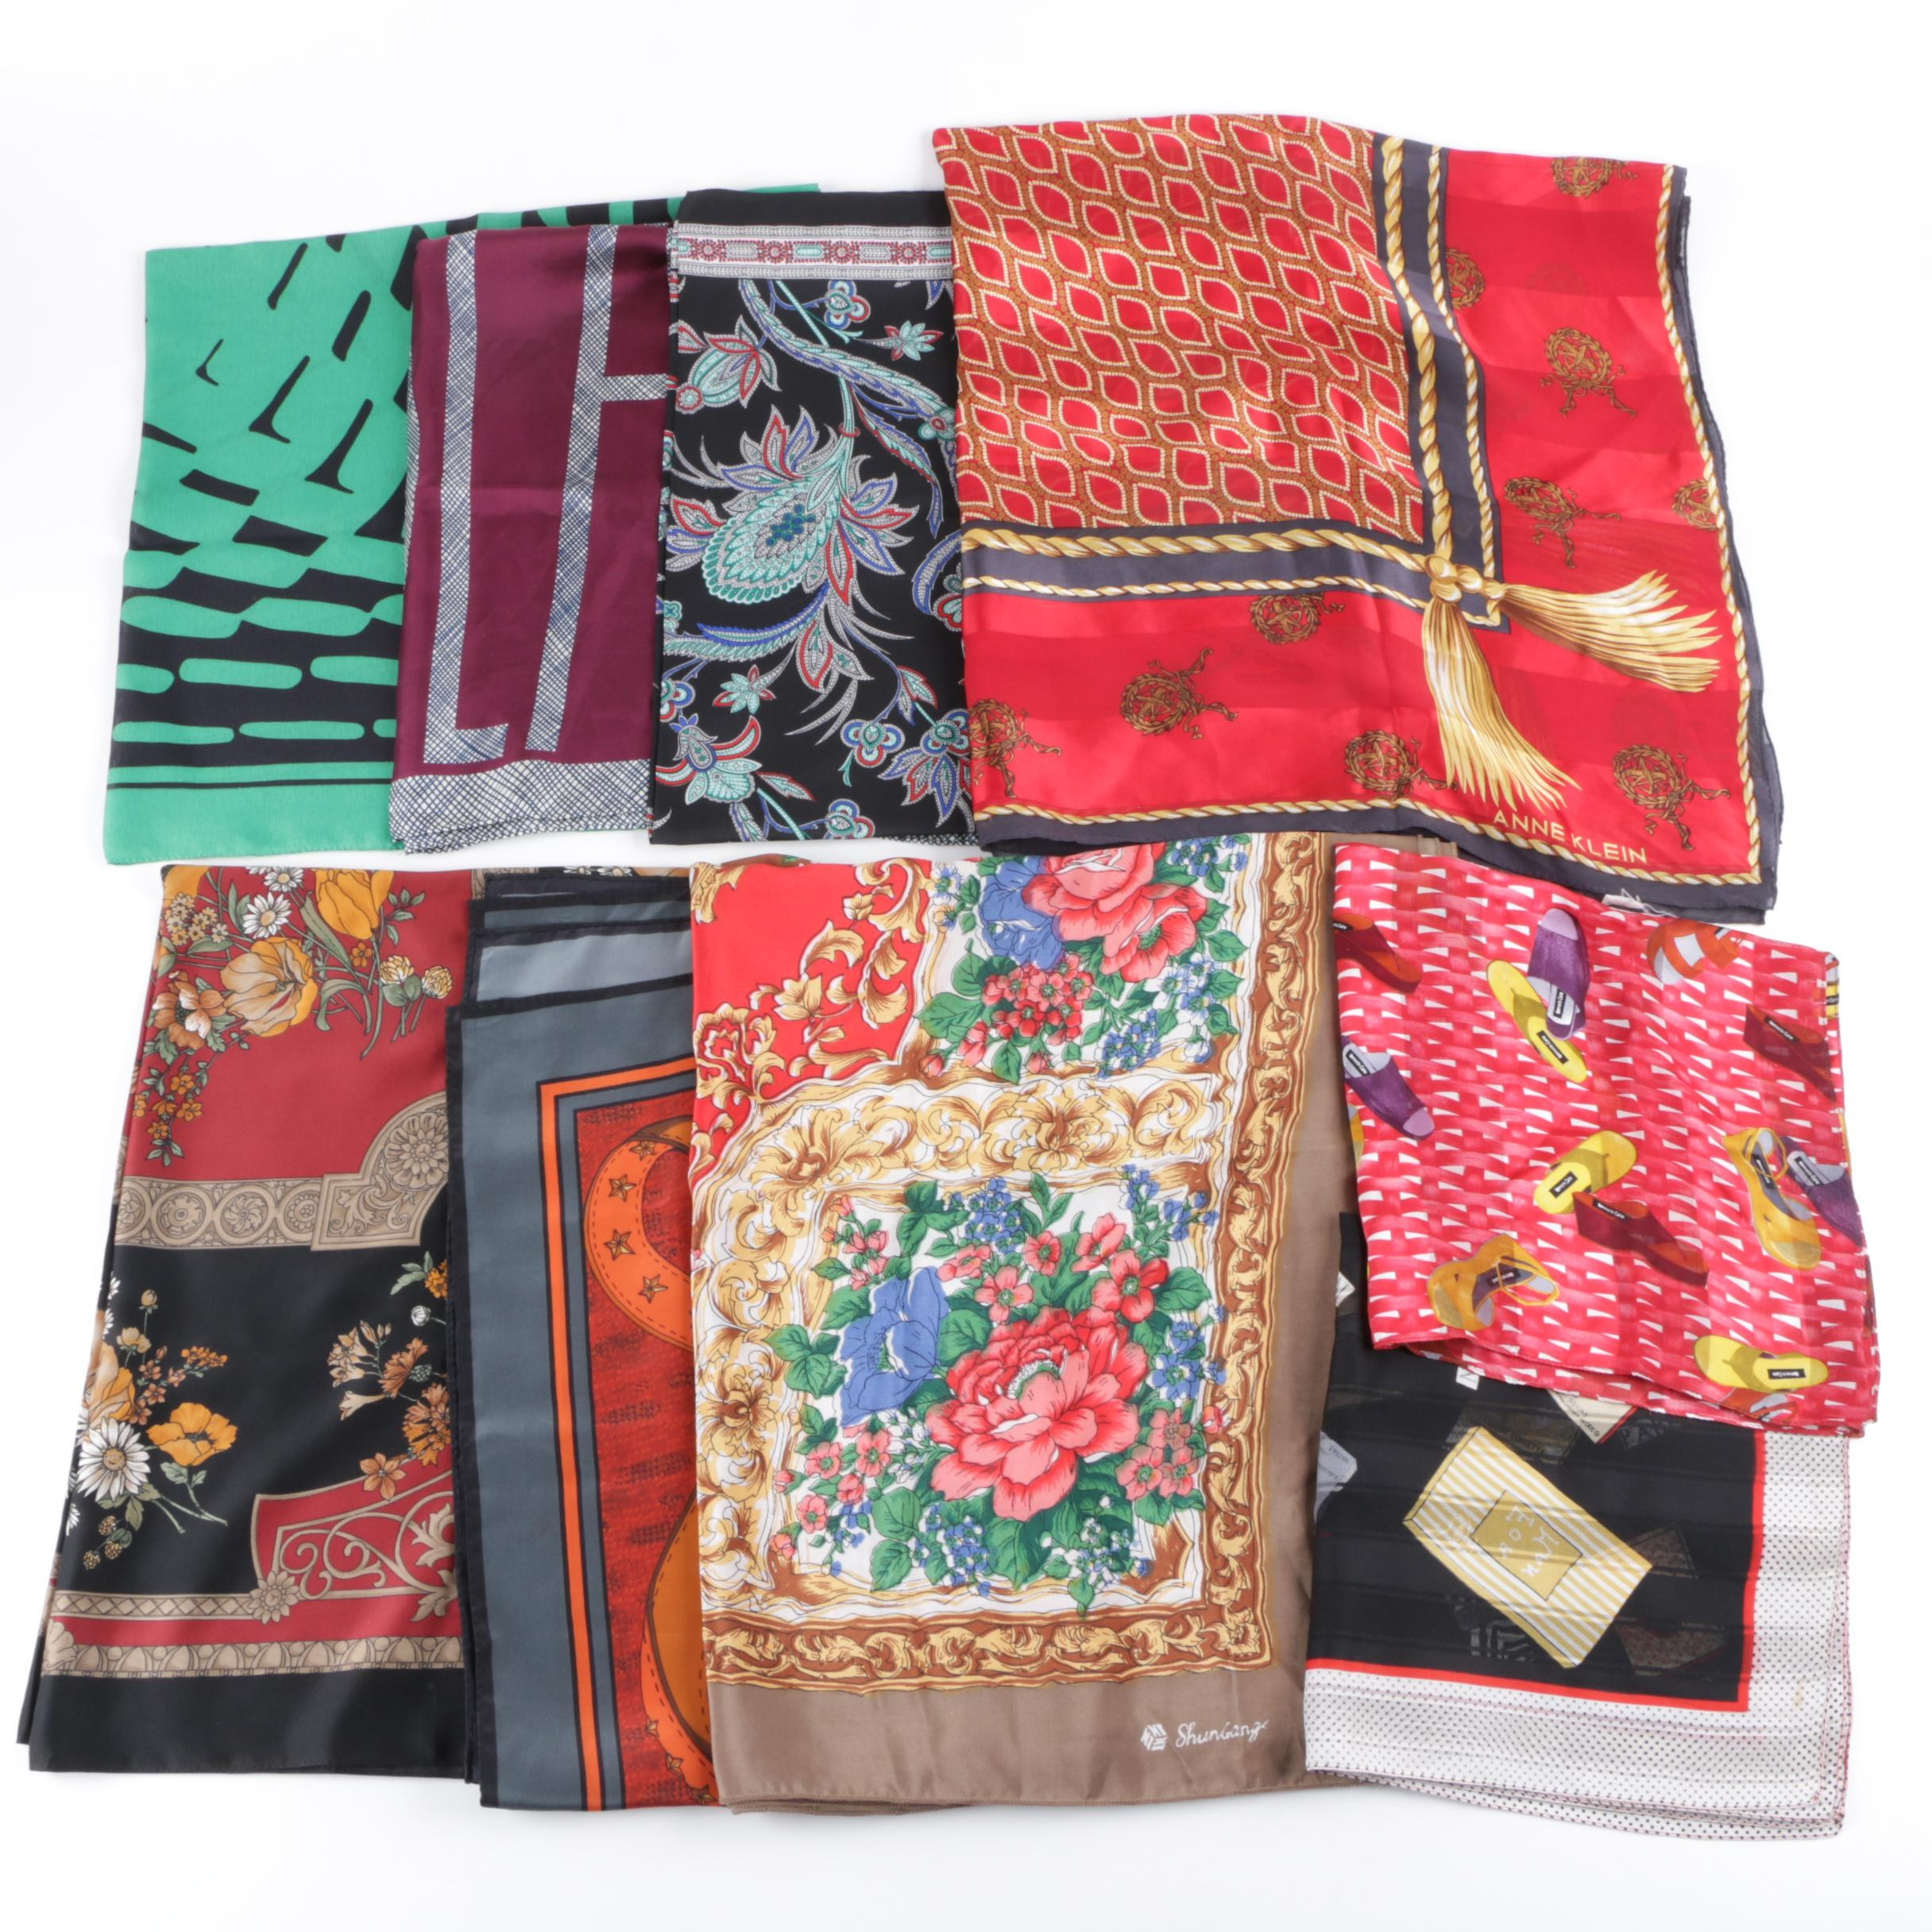 Scarf Collection Including Silk, Bill Blass and Anne Klein Scarves